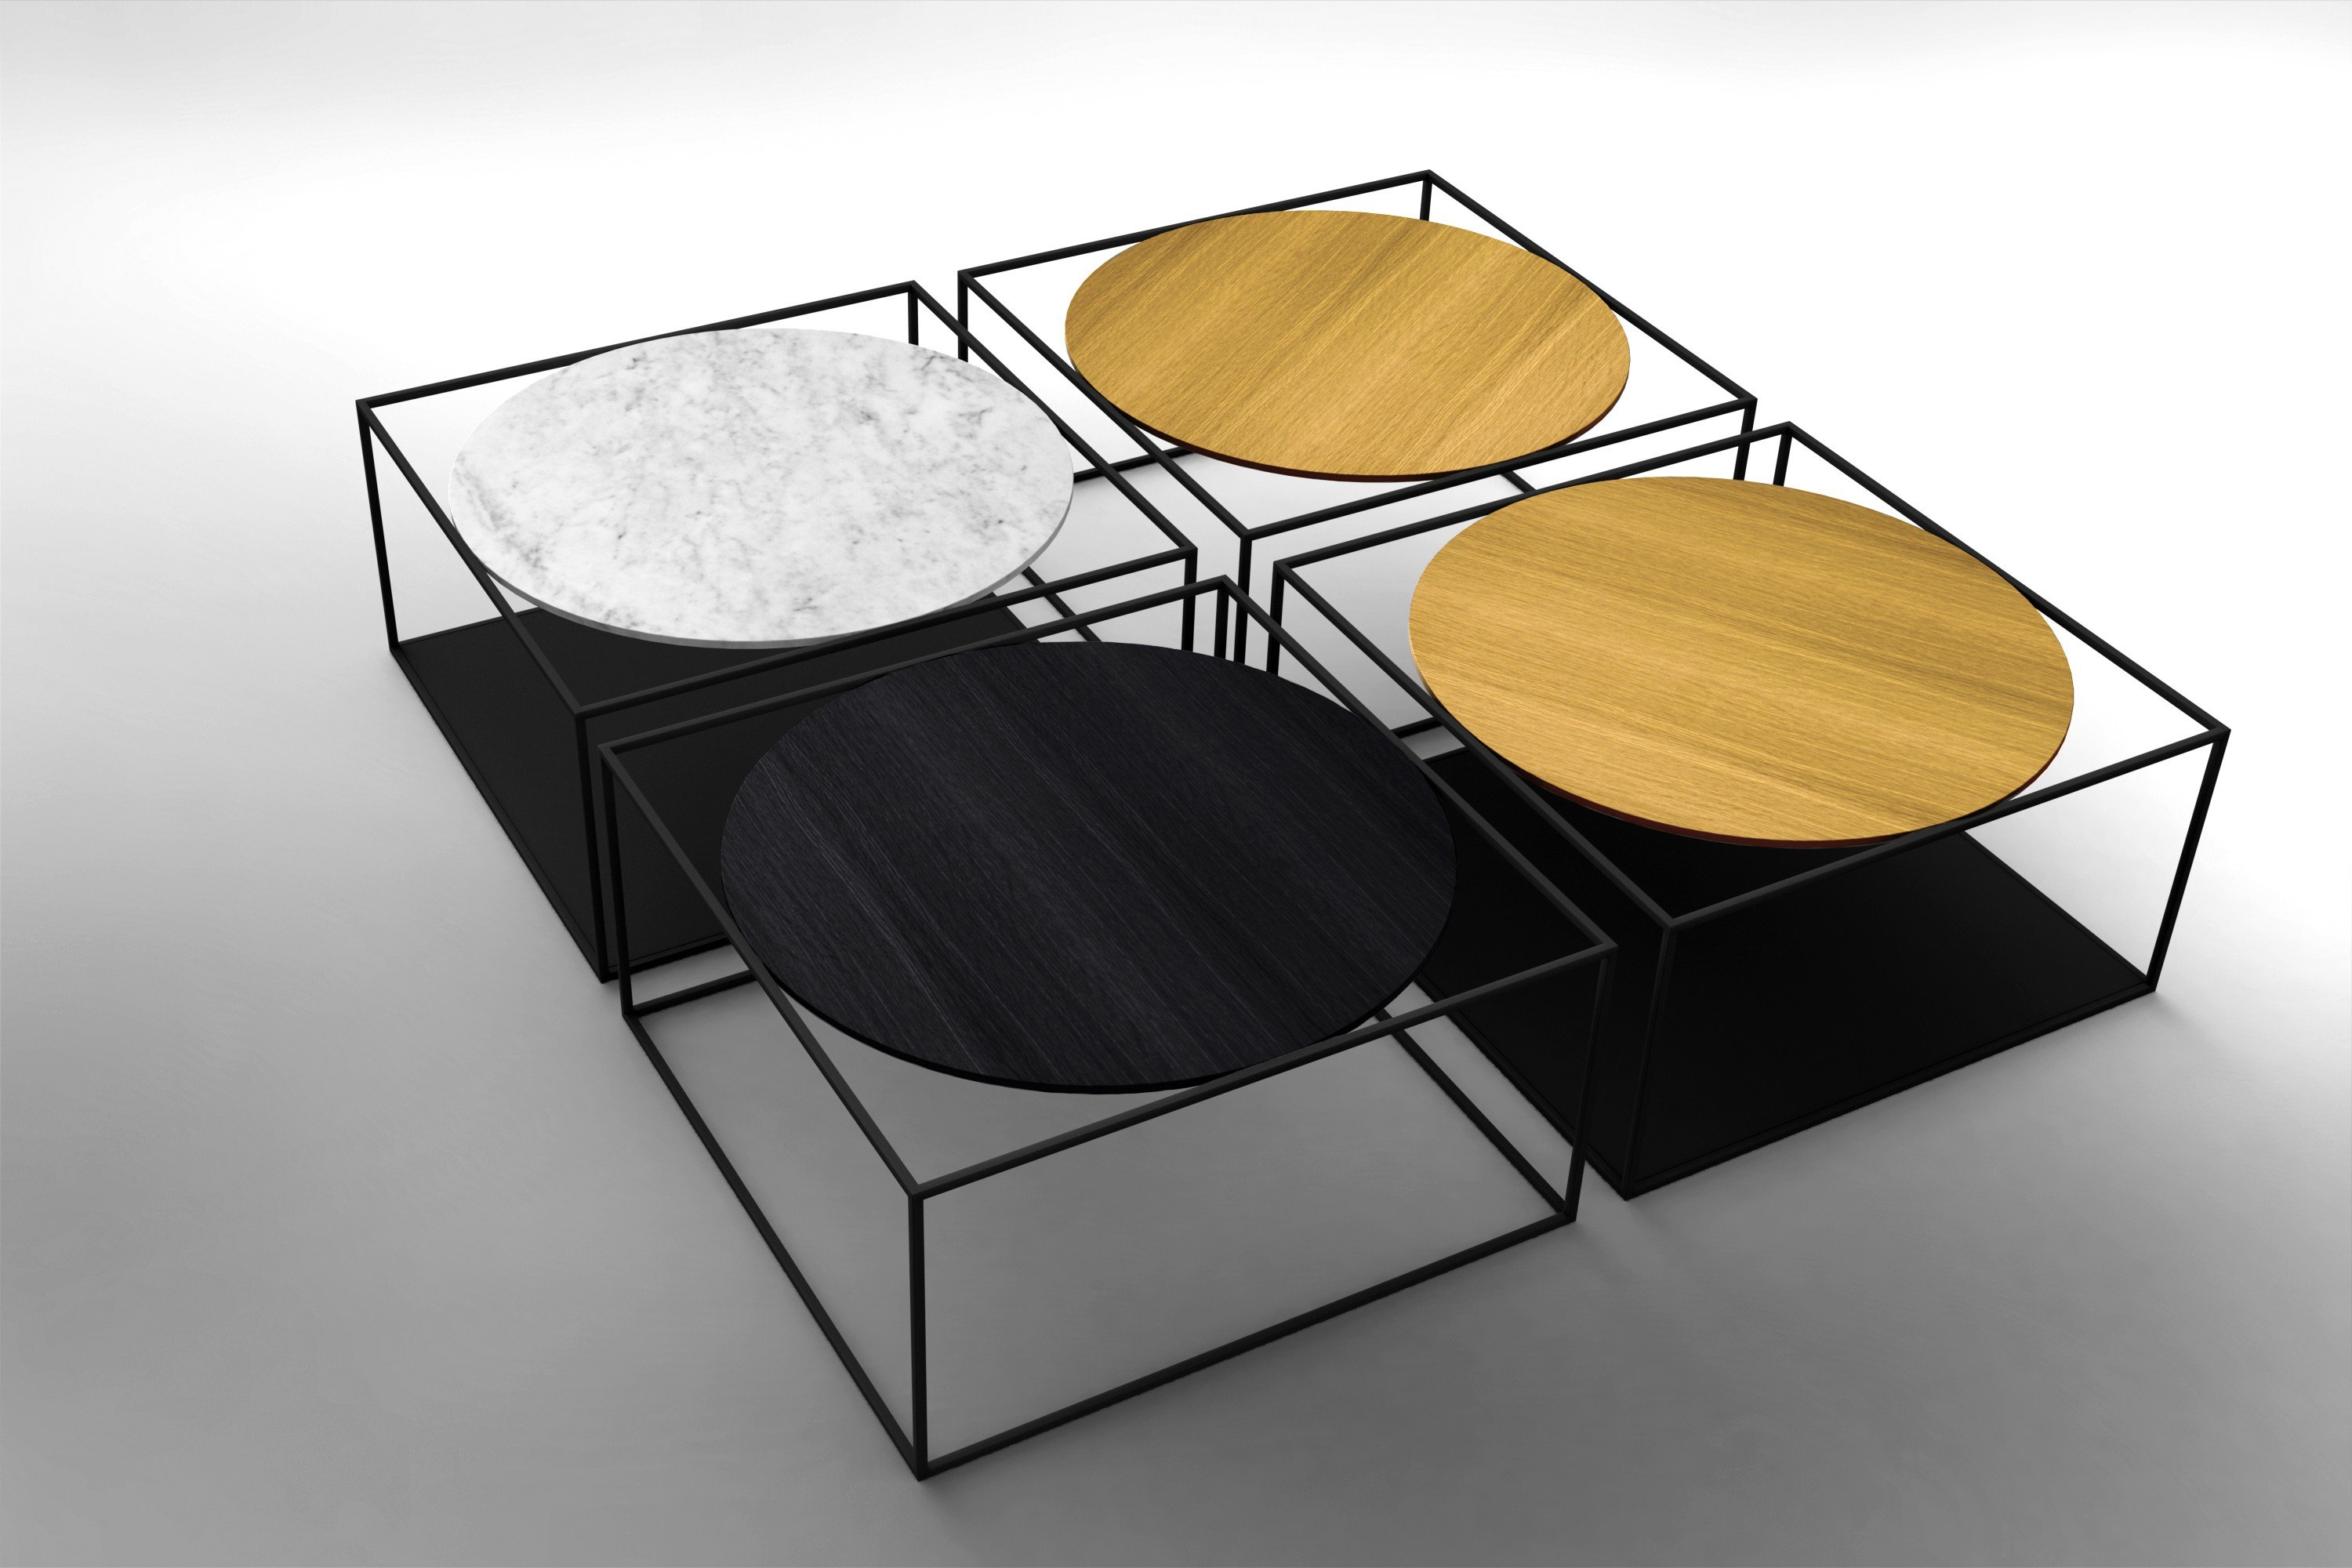 G3 wooden coffee table by roche bobois design johan lindst n - Table roche et bobois ...